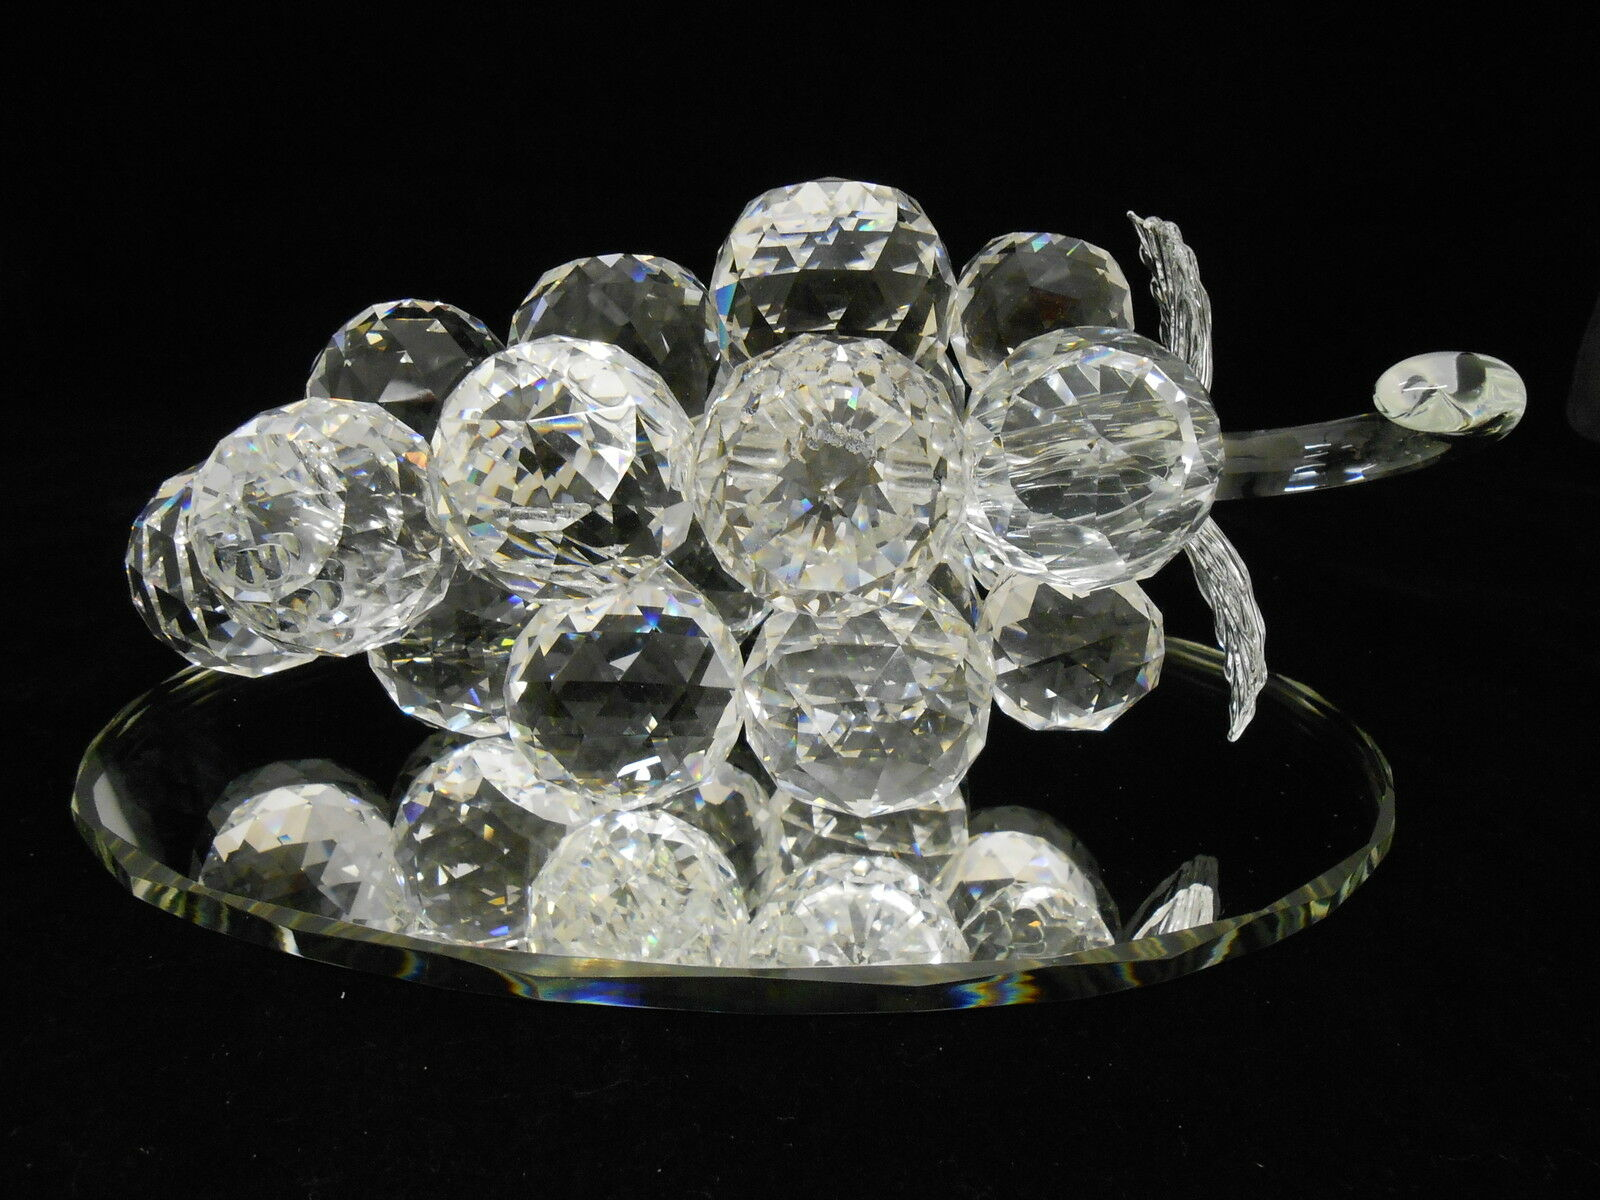 Crystal grape figurine on a mirror      Gift, favor   Home decoration. 0f36d5